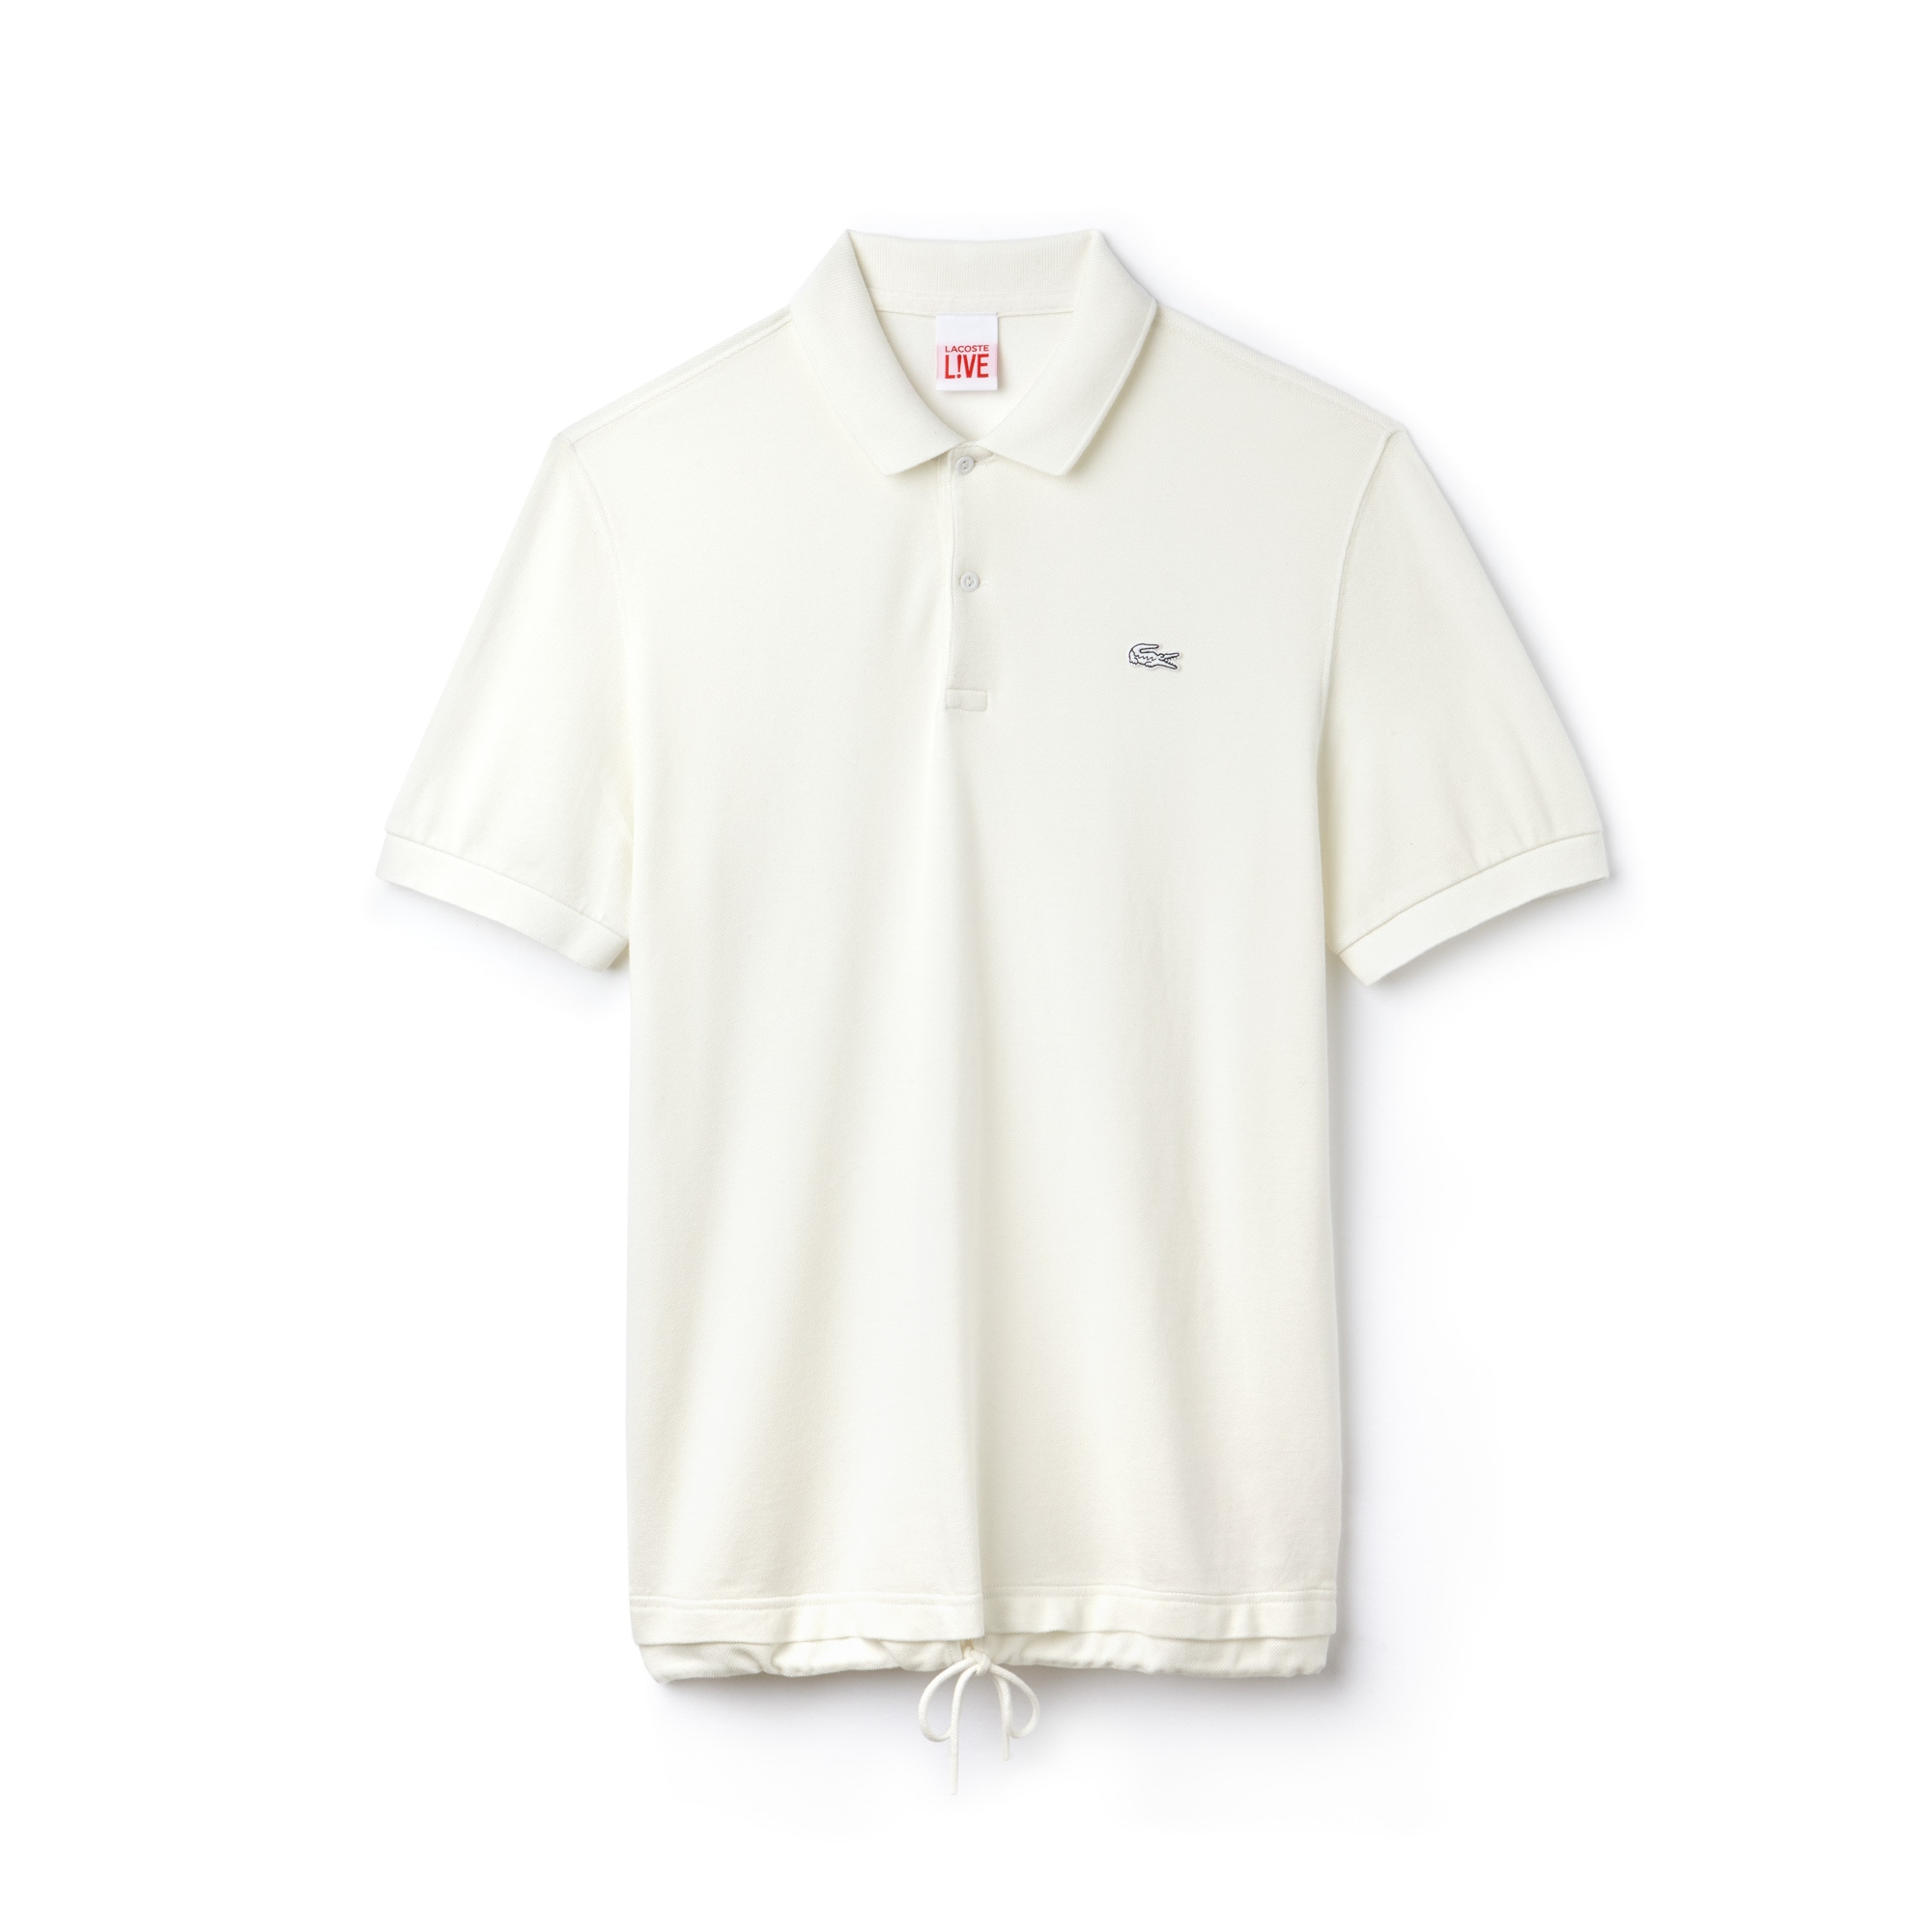 Men's Lacoste LIVE Drawstring Faded Petit Piqué Polo Shirt